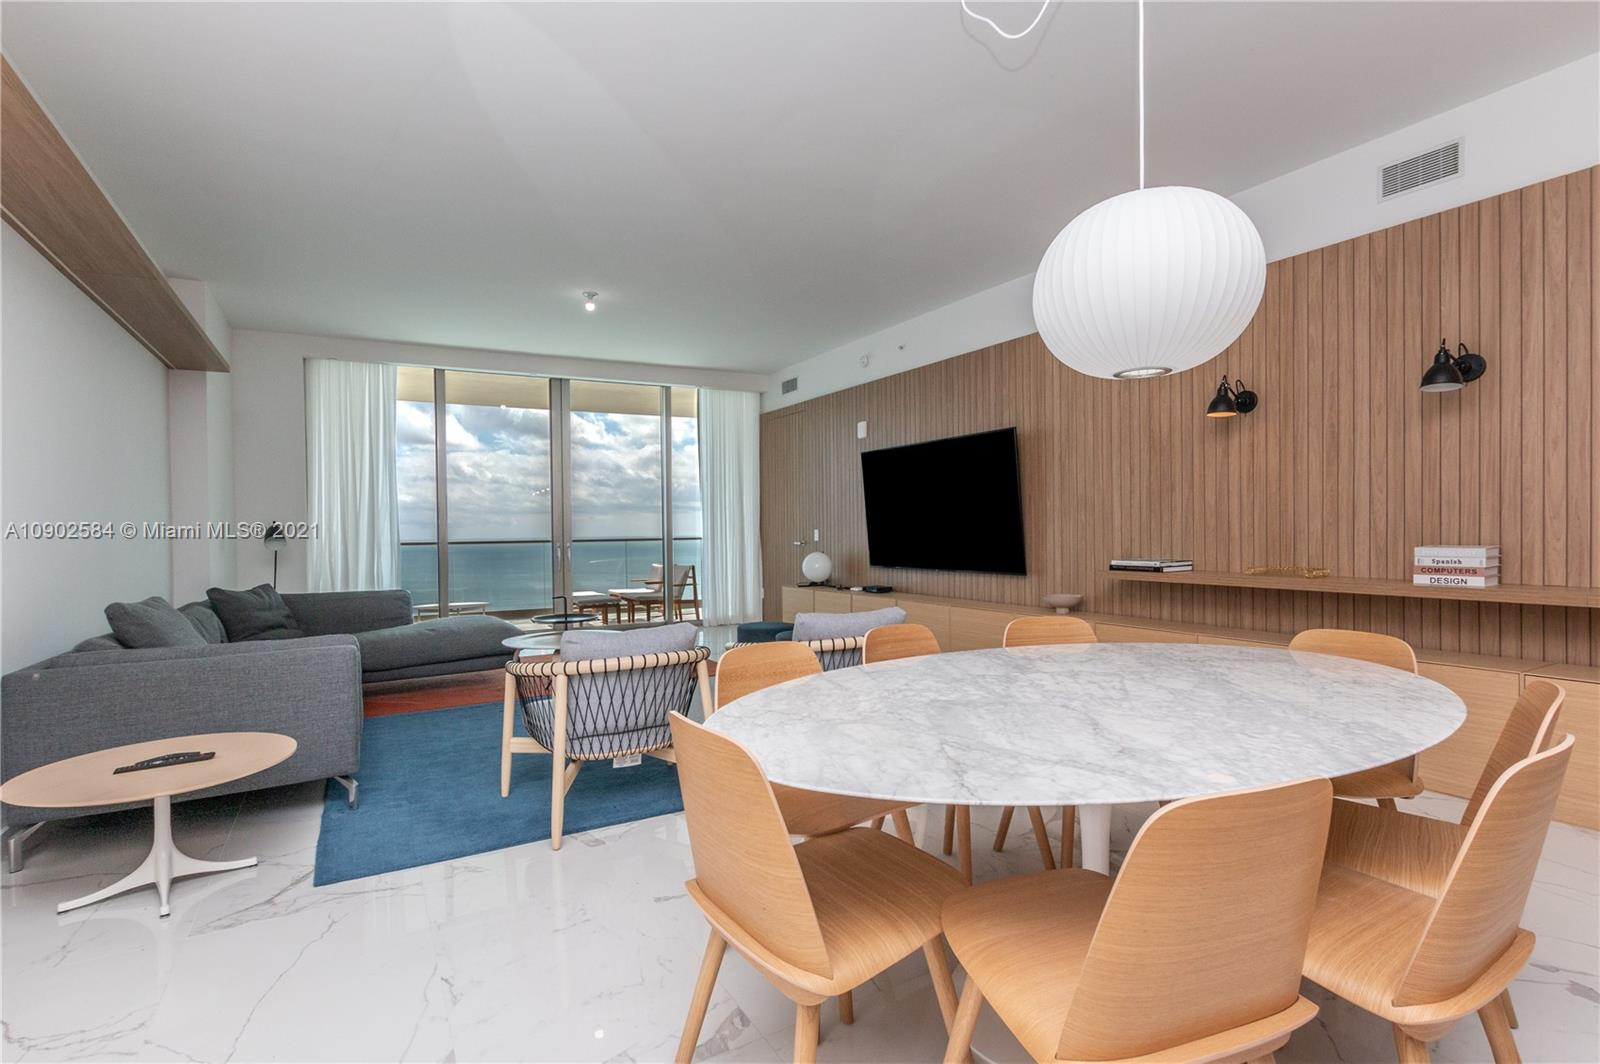 LOOK NO FURTHER. STUNNING DIRECT OCEAN VIEWS AND INTRACOASTAL.  PROPERTY READY TO WELCOME A NEW HOMEOWNER YOU TO ENJOY MODERN DESIGN LIVING. BRAND DETAILS. Call to schedule your private tour.